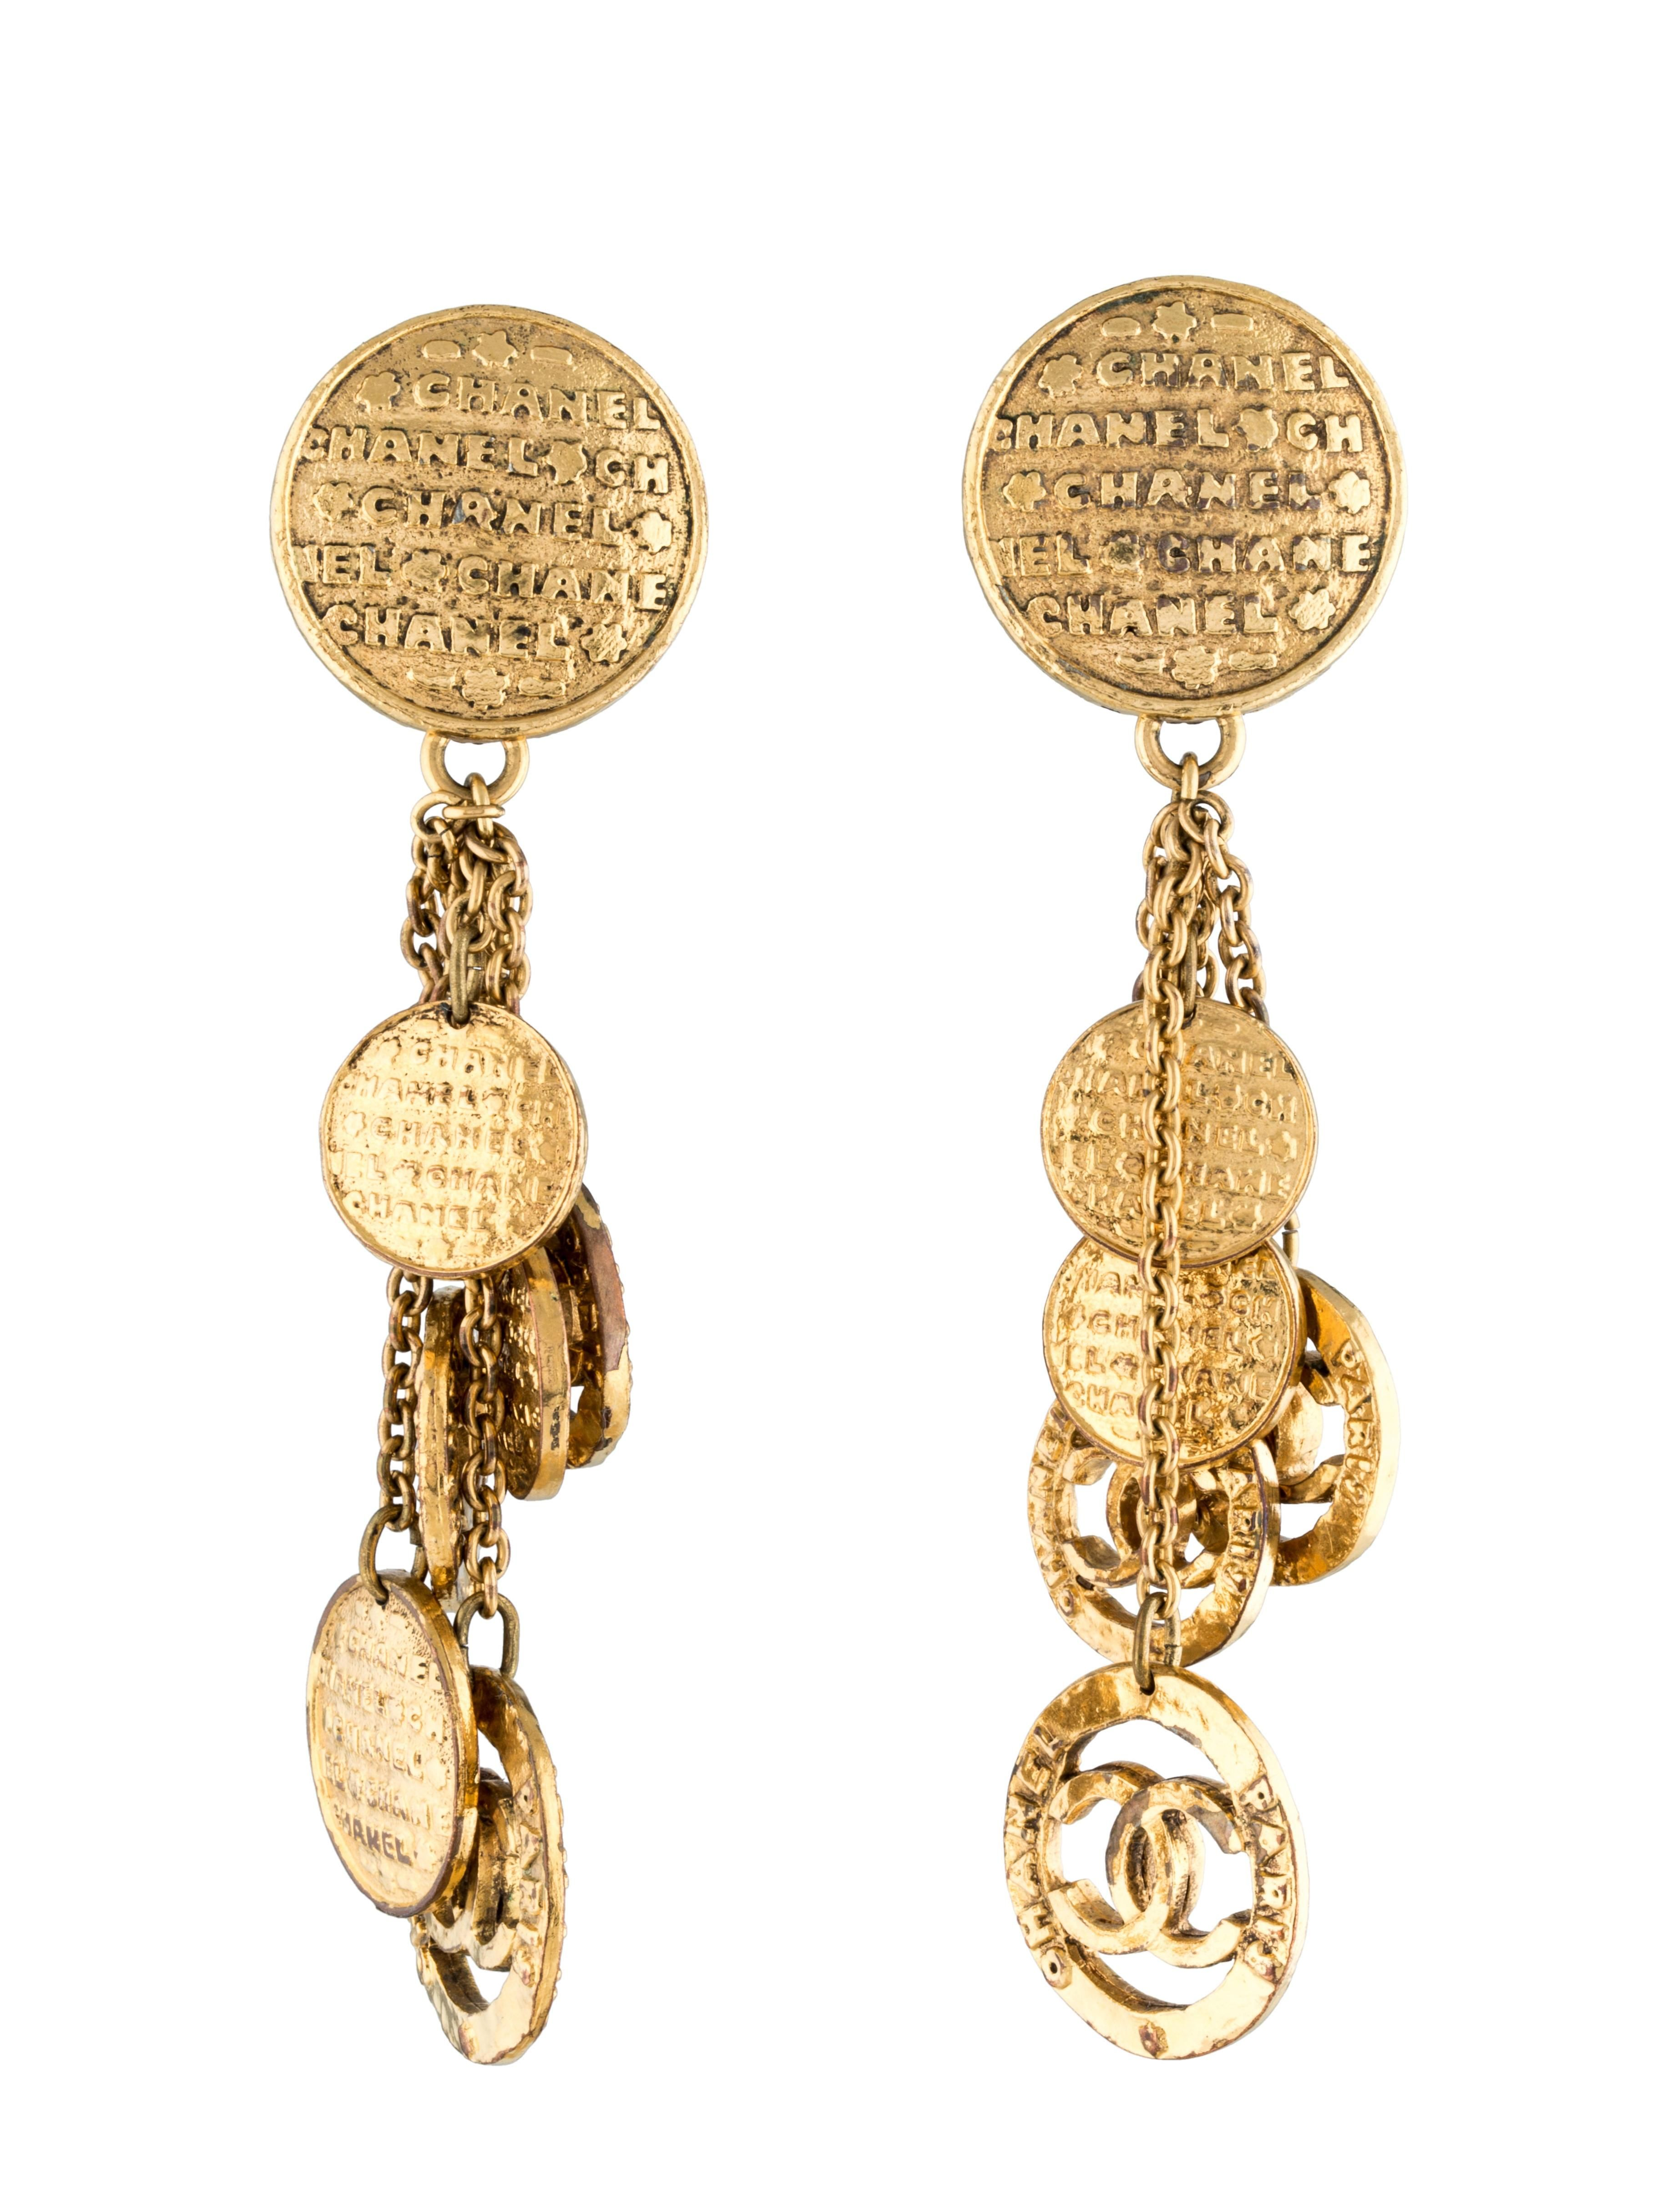 Vintage Chanel Cc Chandelier Earrings Free And Guaranteed Authenticity On